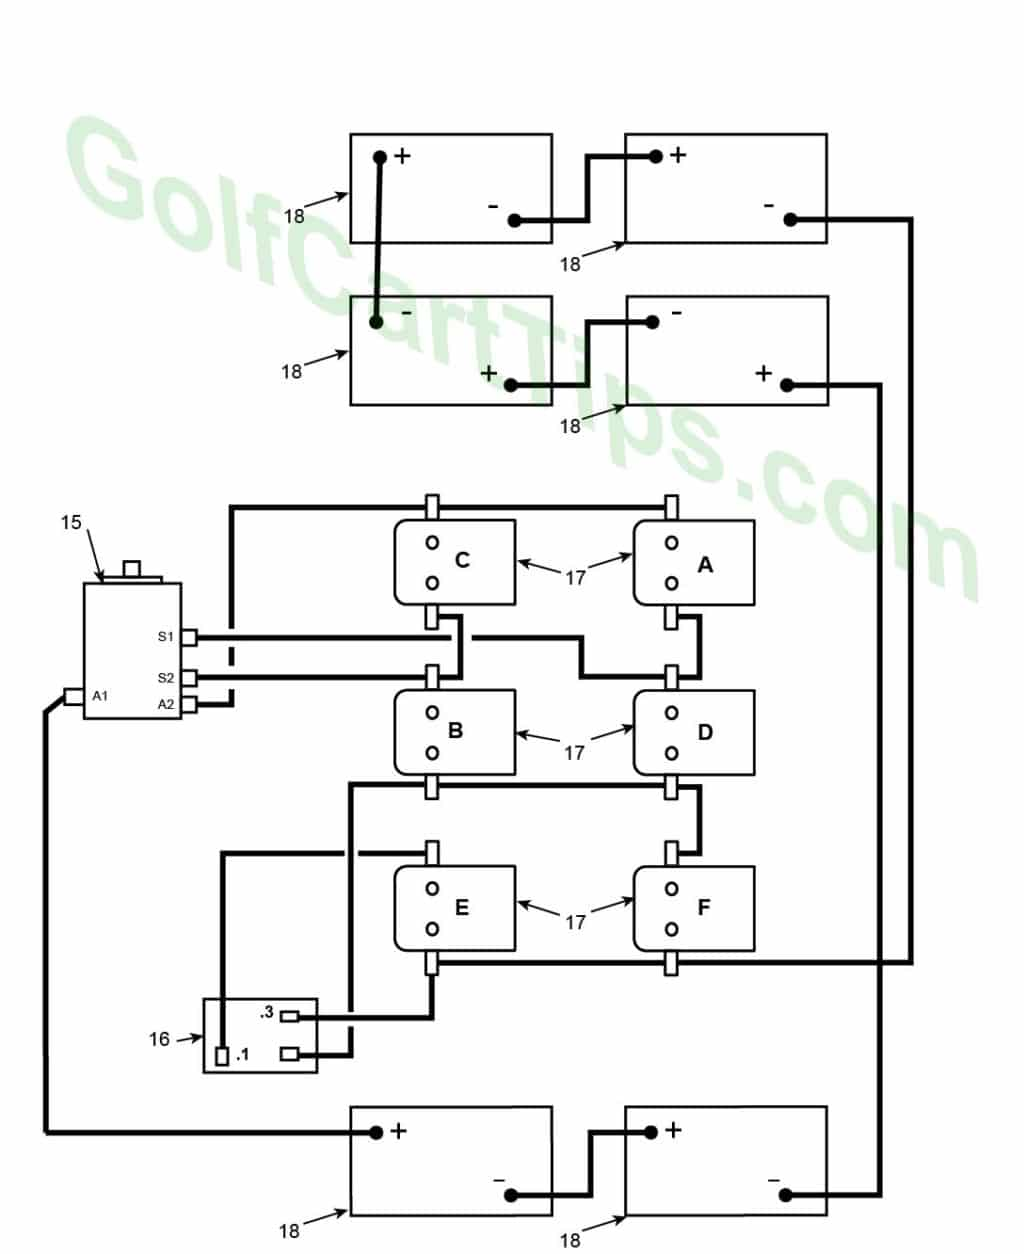 Harley Davidson Golf Cart Wiring Diagrams To De